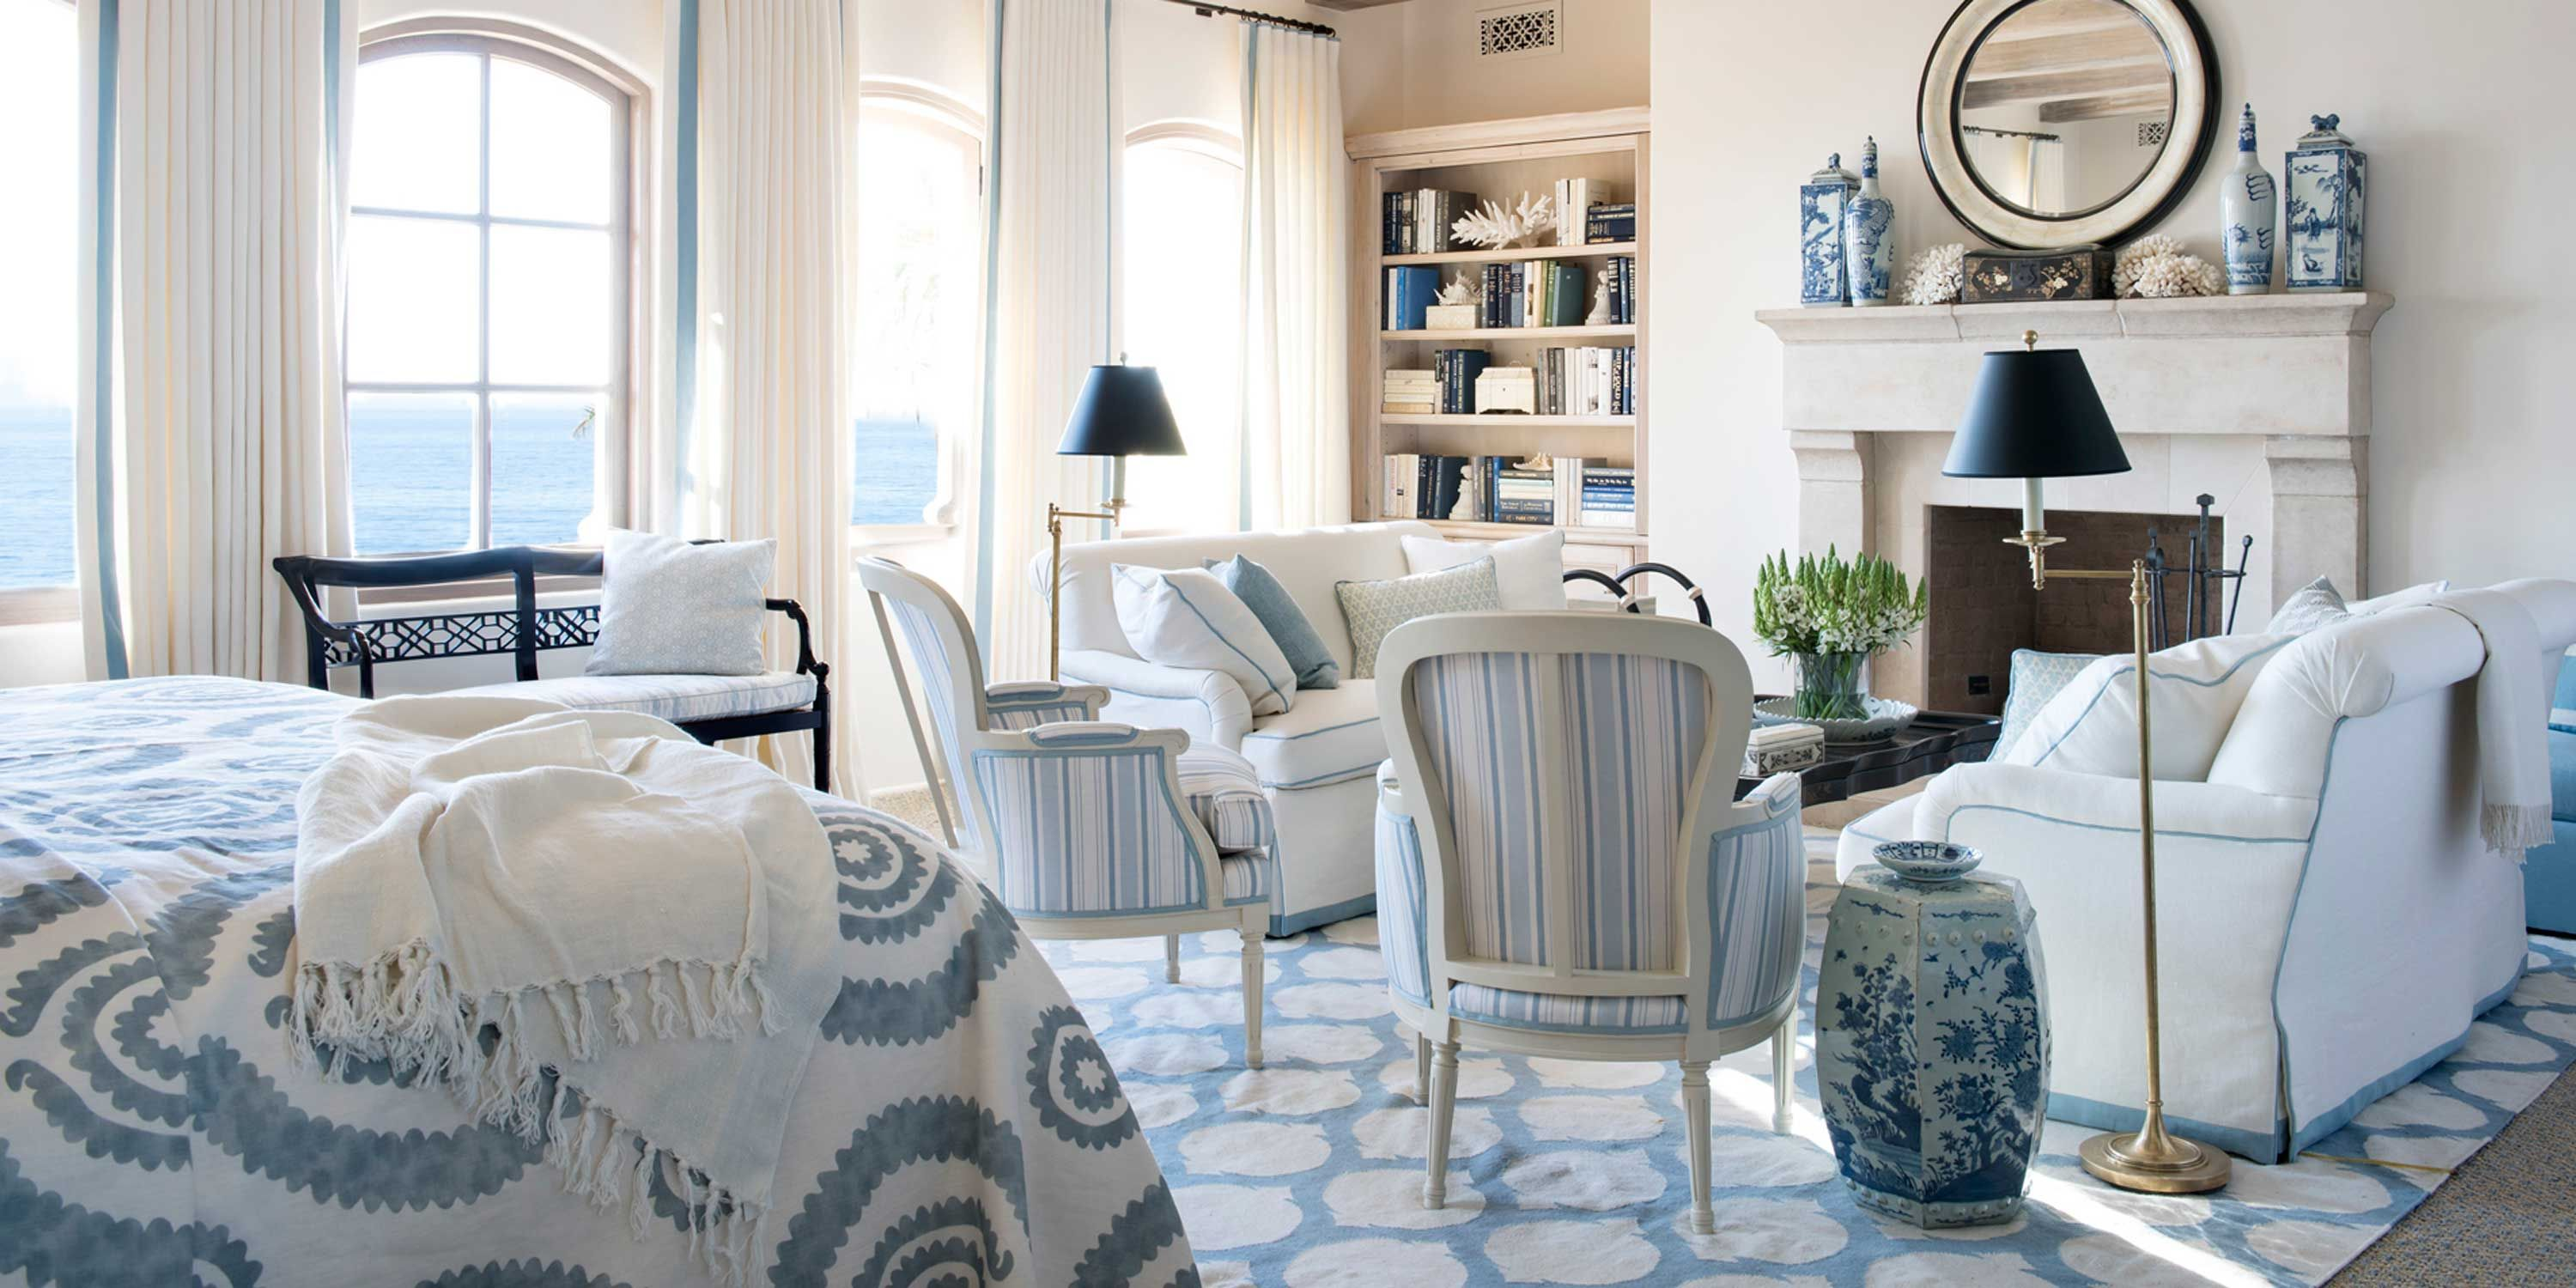 Grey White And Blue Living Room Blue And White Rooms Decorating With Blue And White